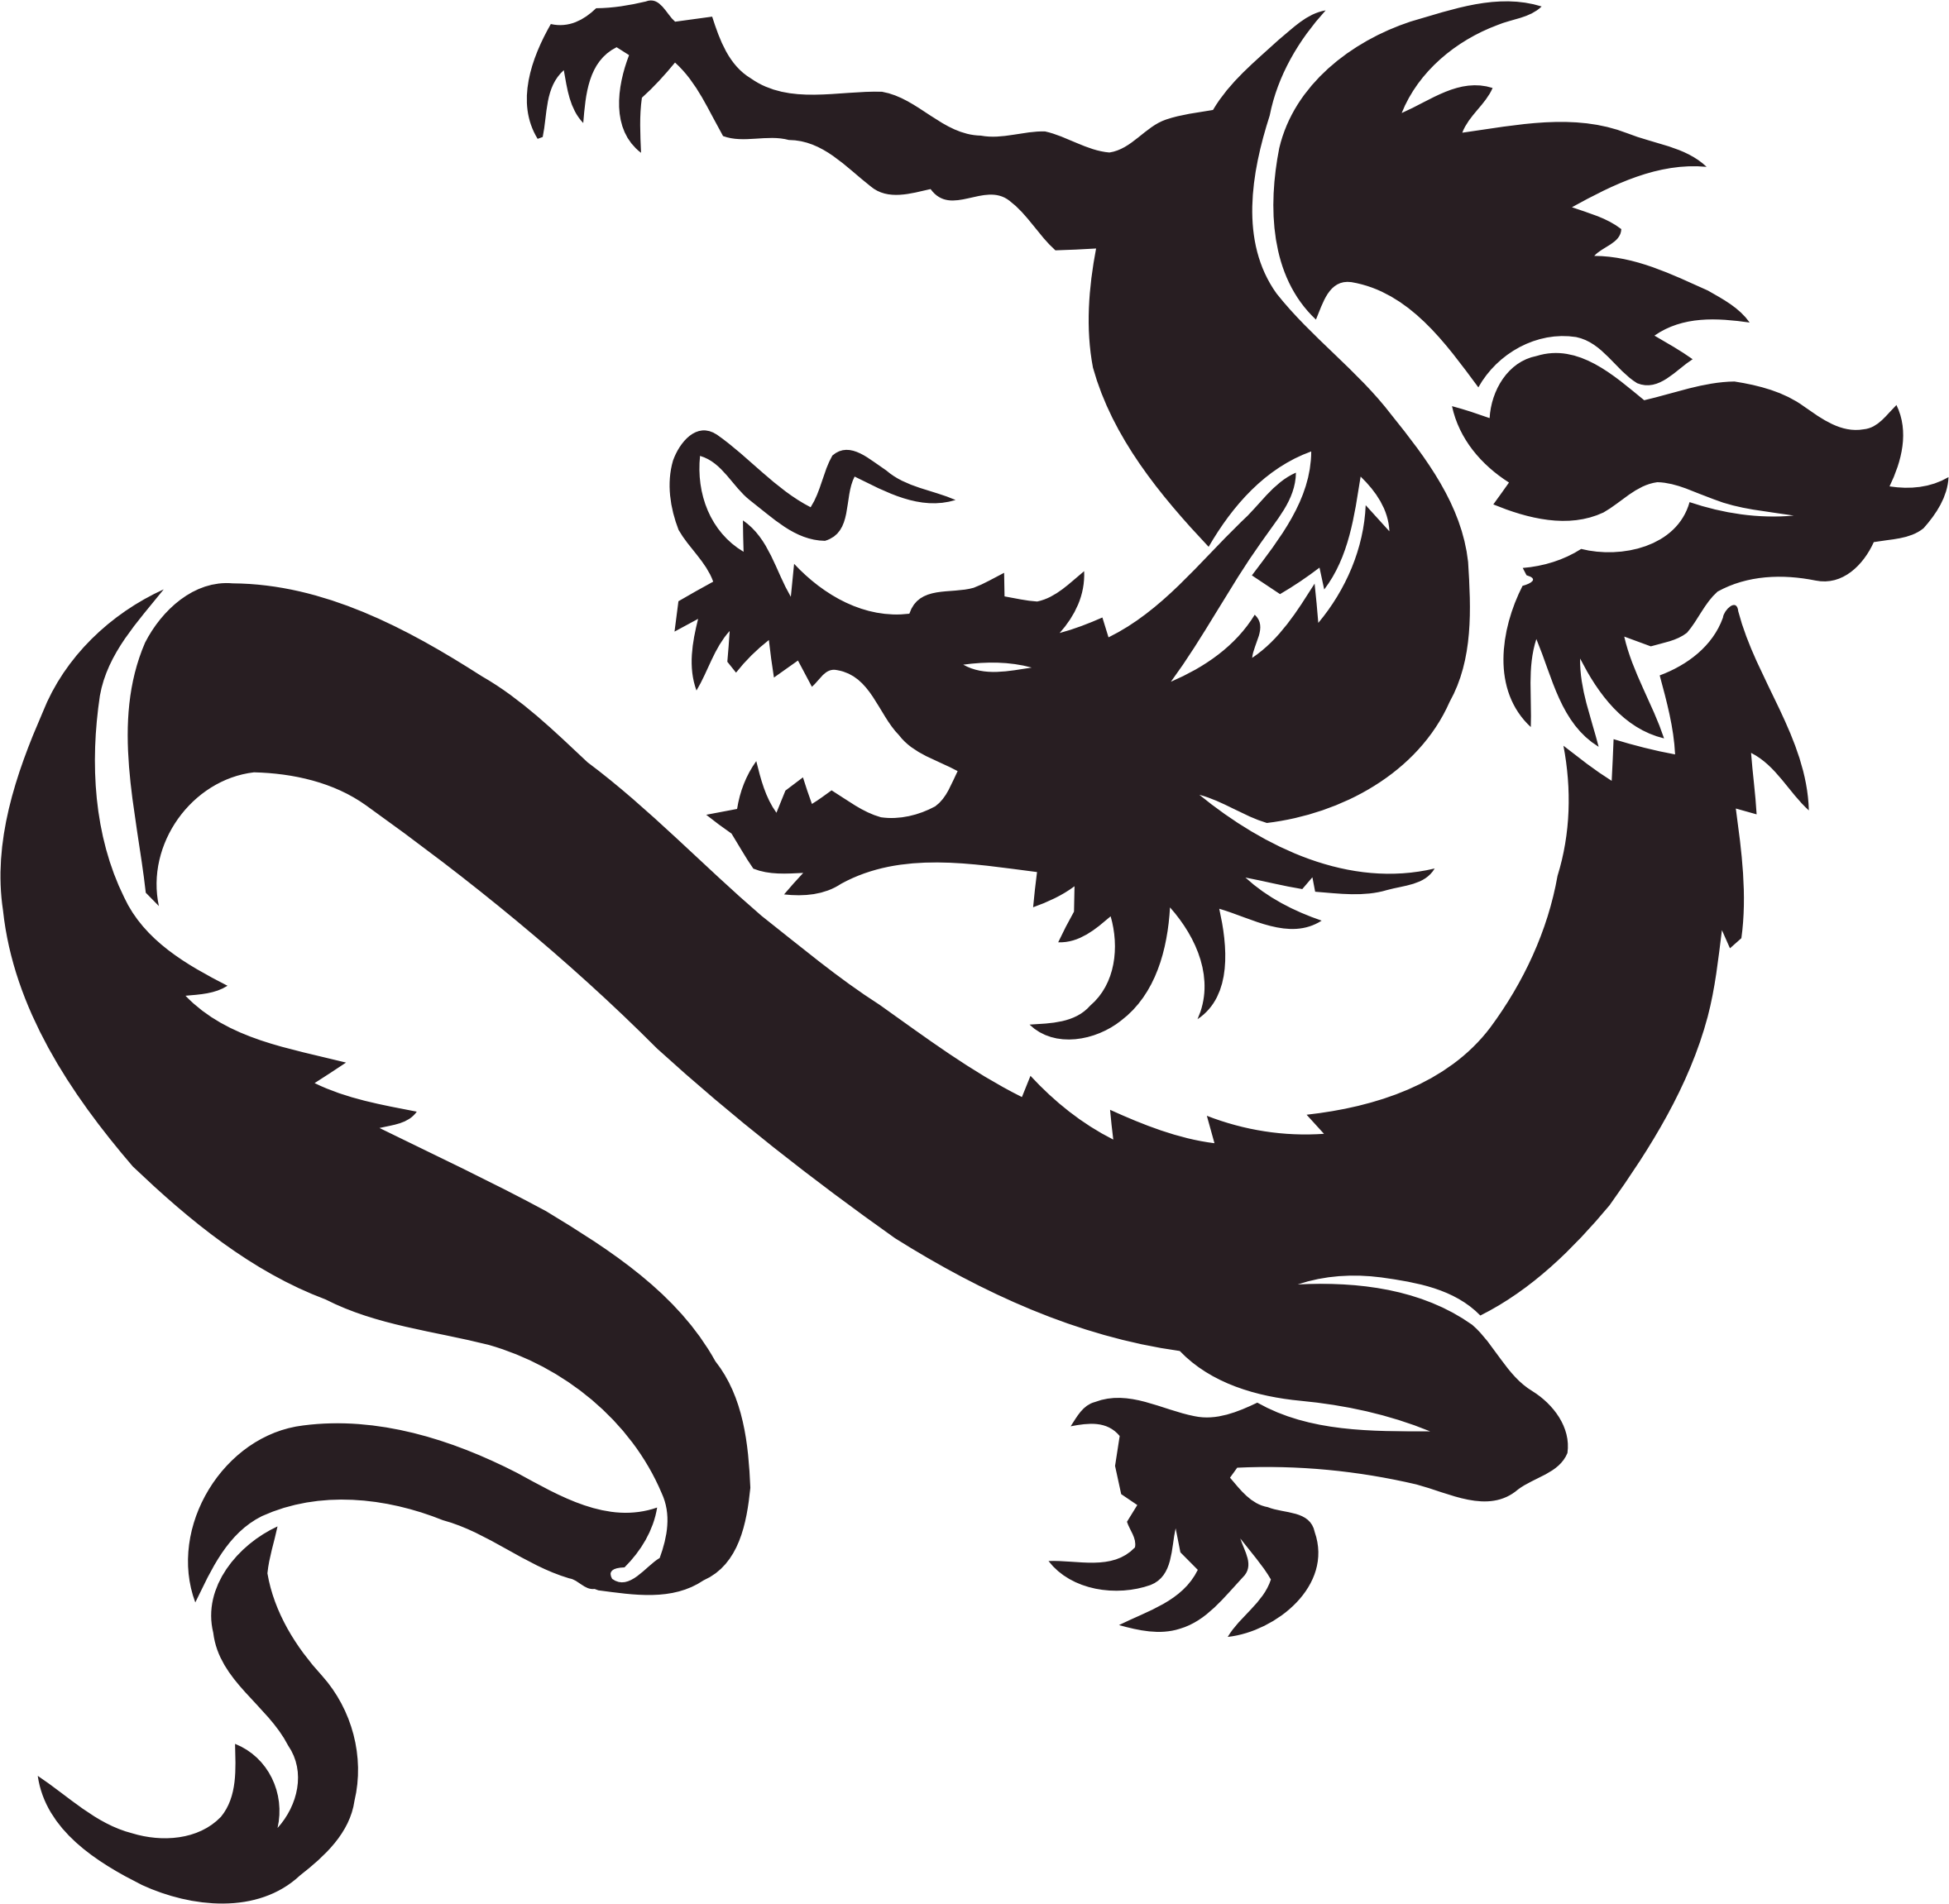 Tribal transparent silhouette. Dragon icons png free